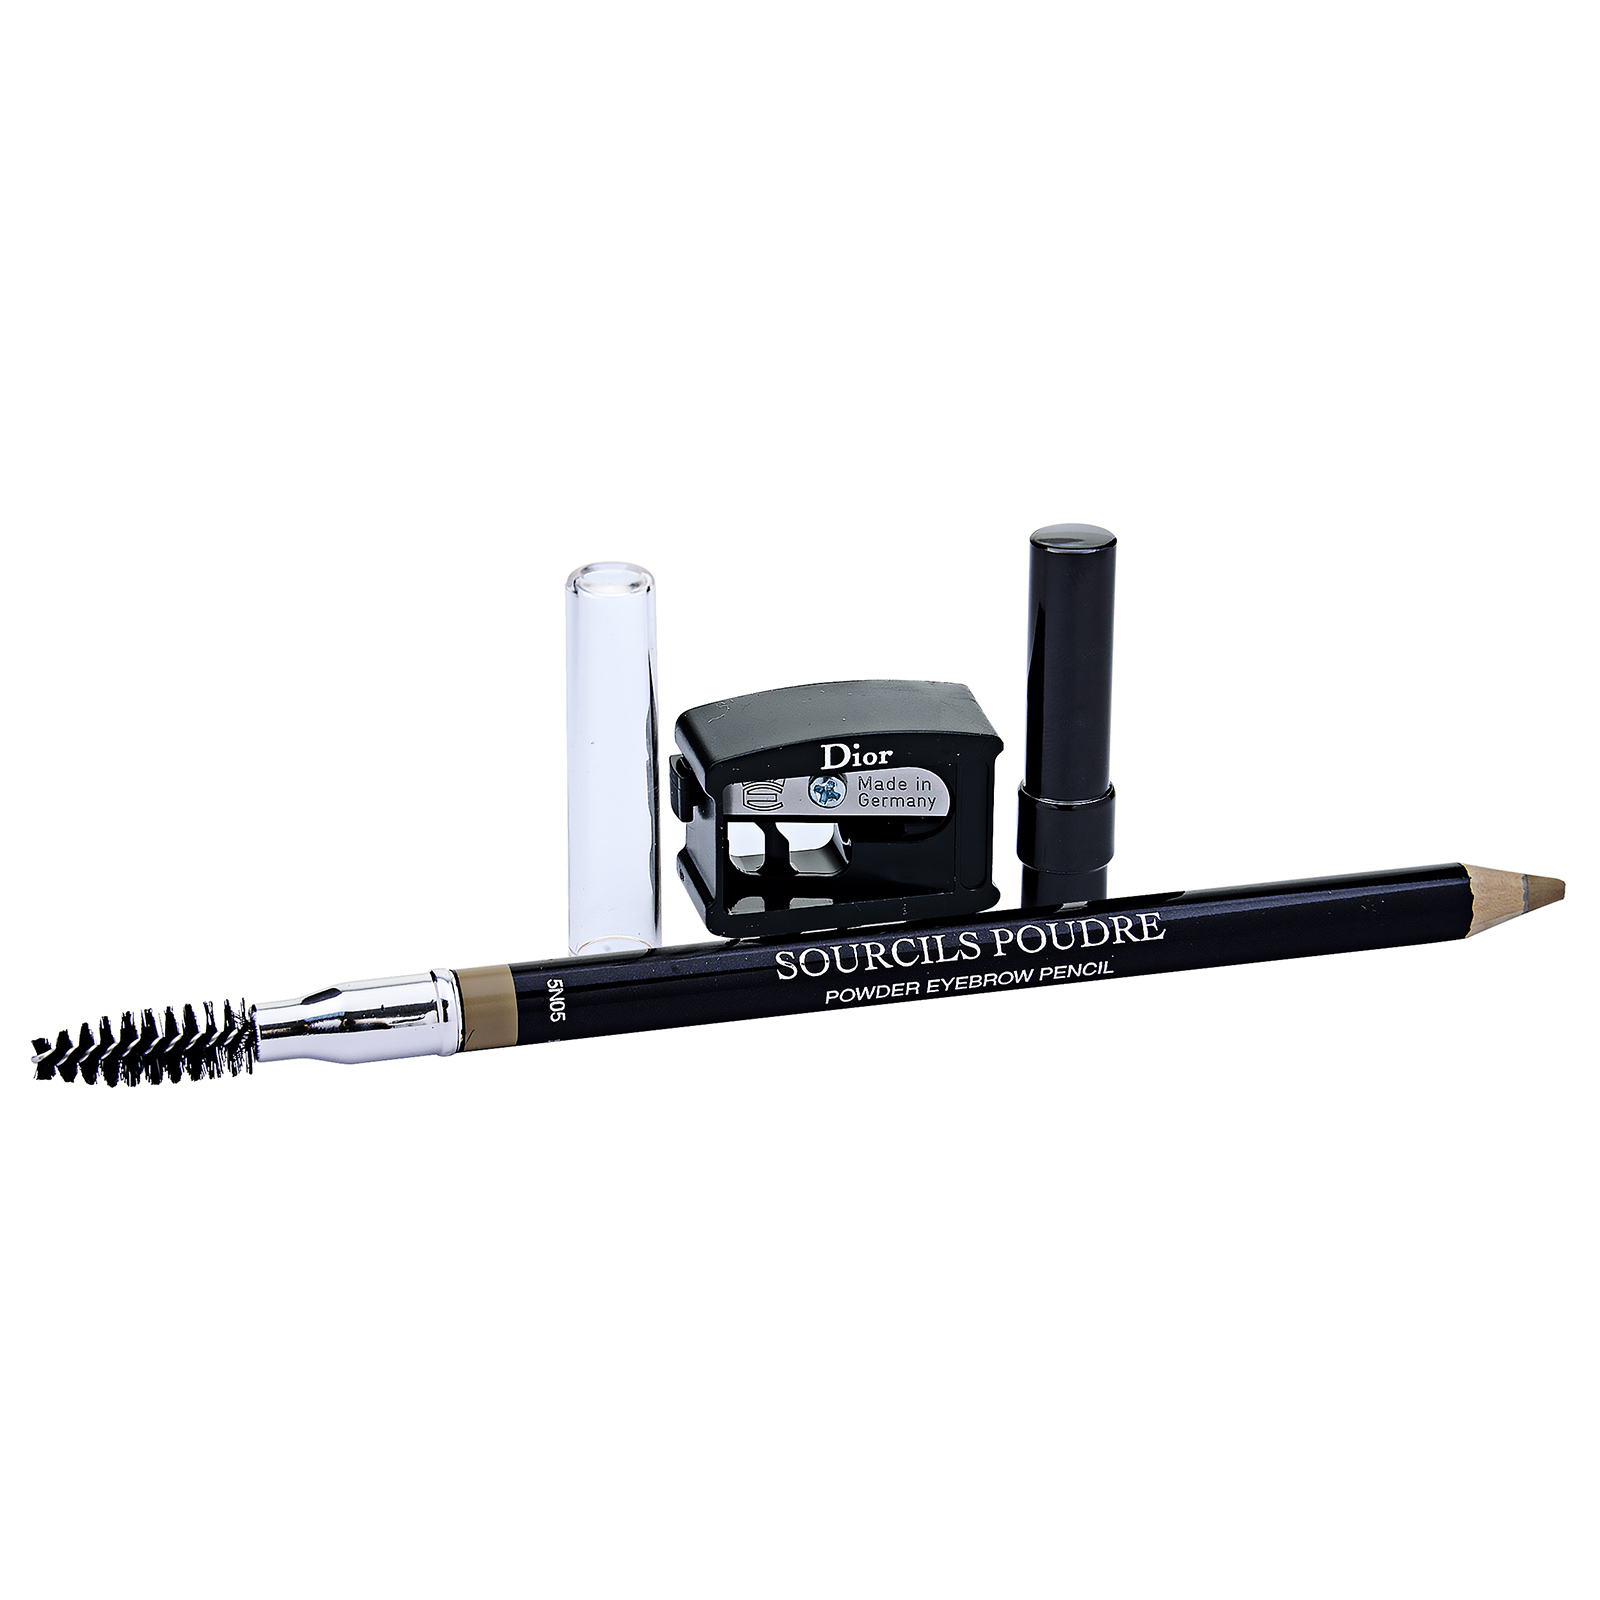 Christian Dior  Sourcils Poudre Powder Eyebrow Pencil (With Brush And Sharpener) 653 Blonde, 0.04oz, 1.2g